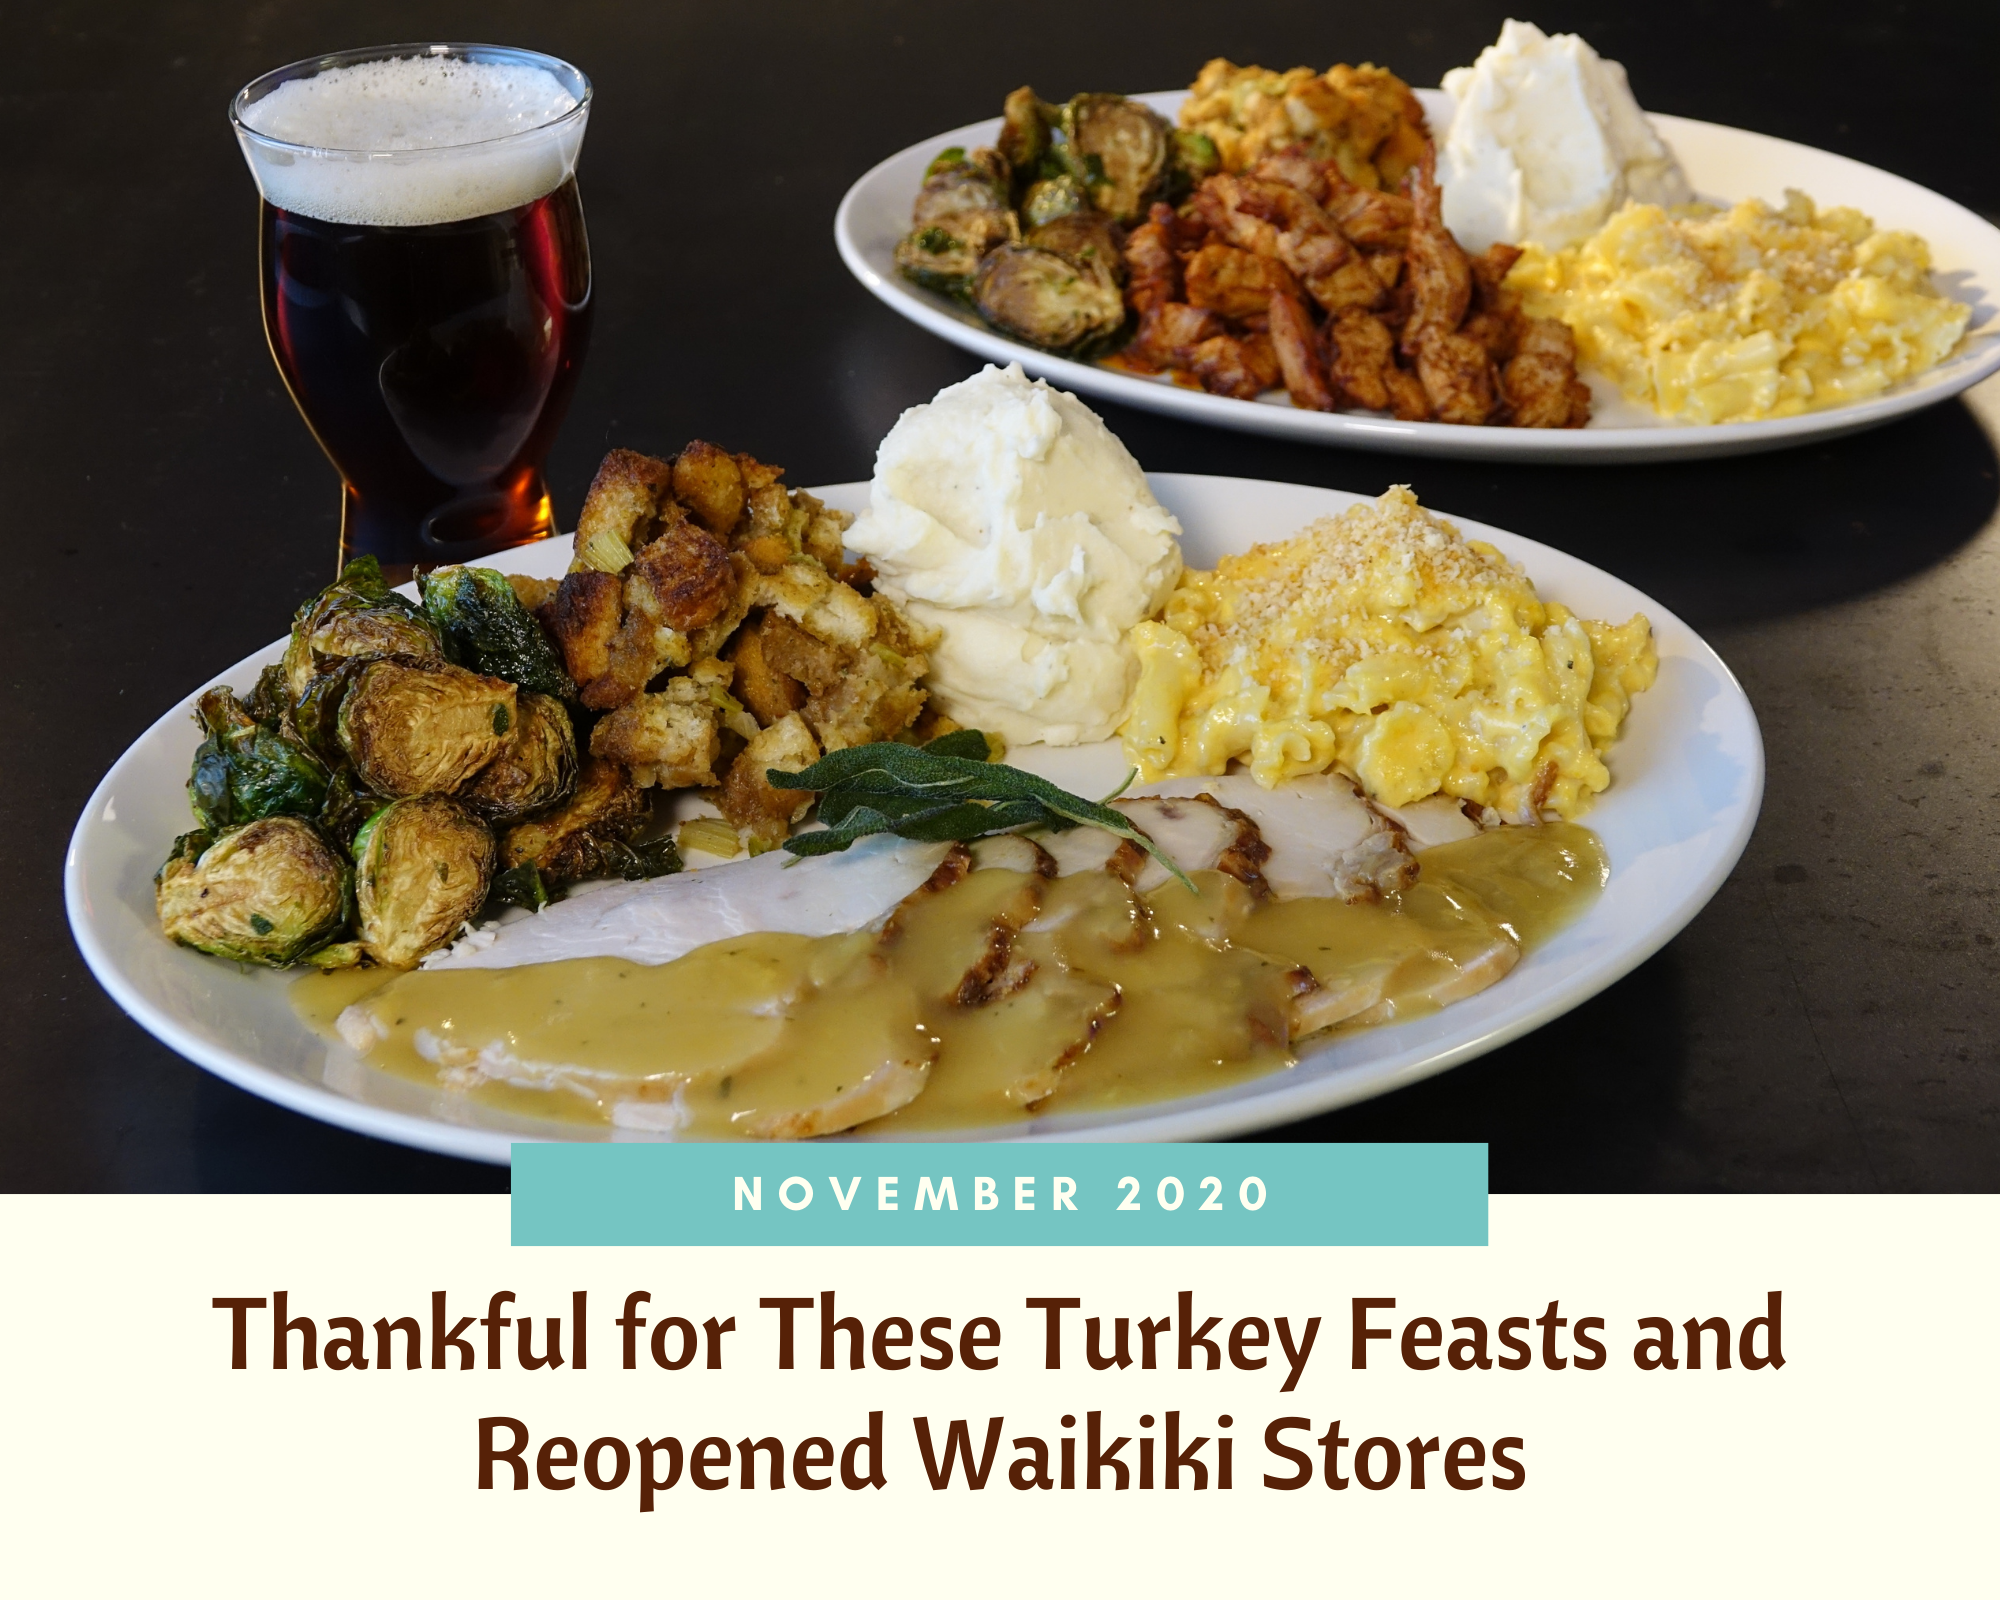 November 2020: Thankful for These Turkey Feasts and Reopened Waikiki Stores